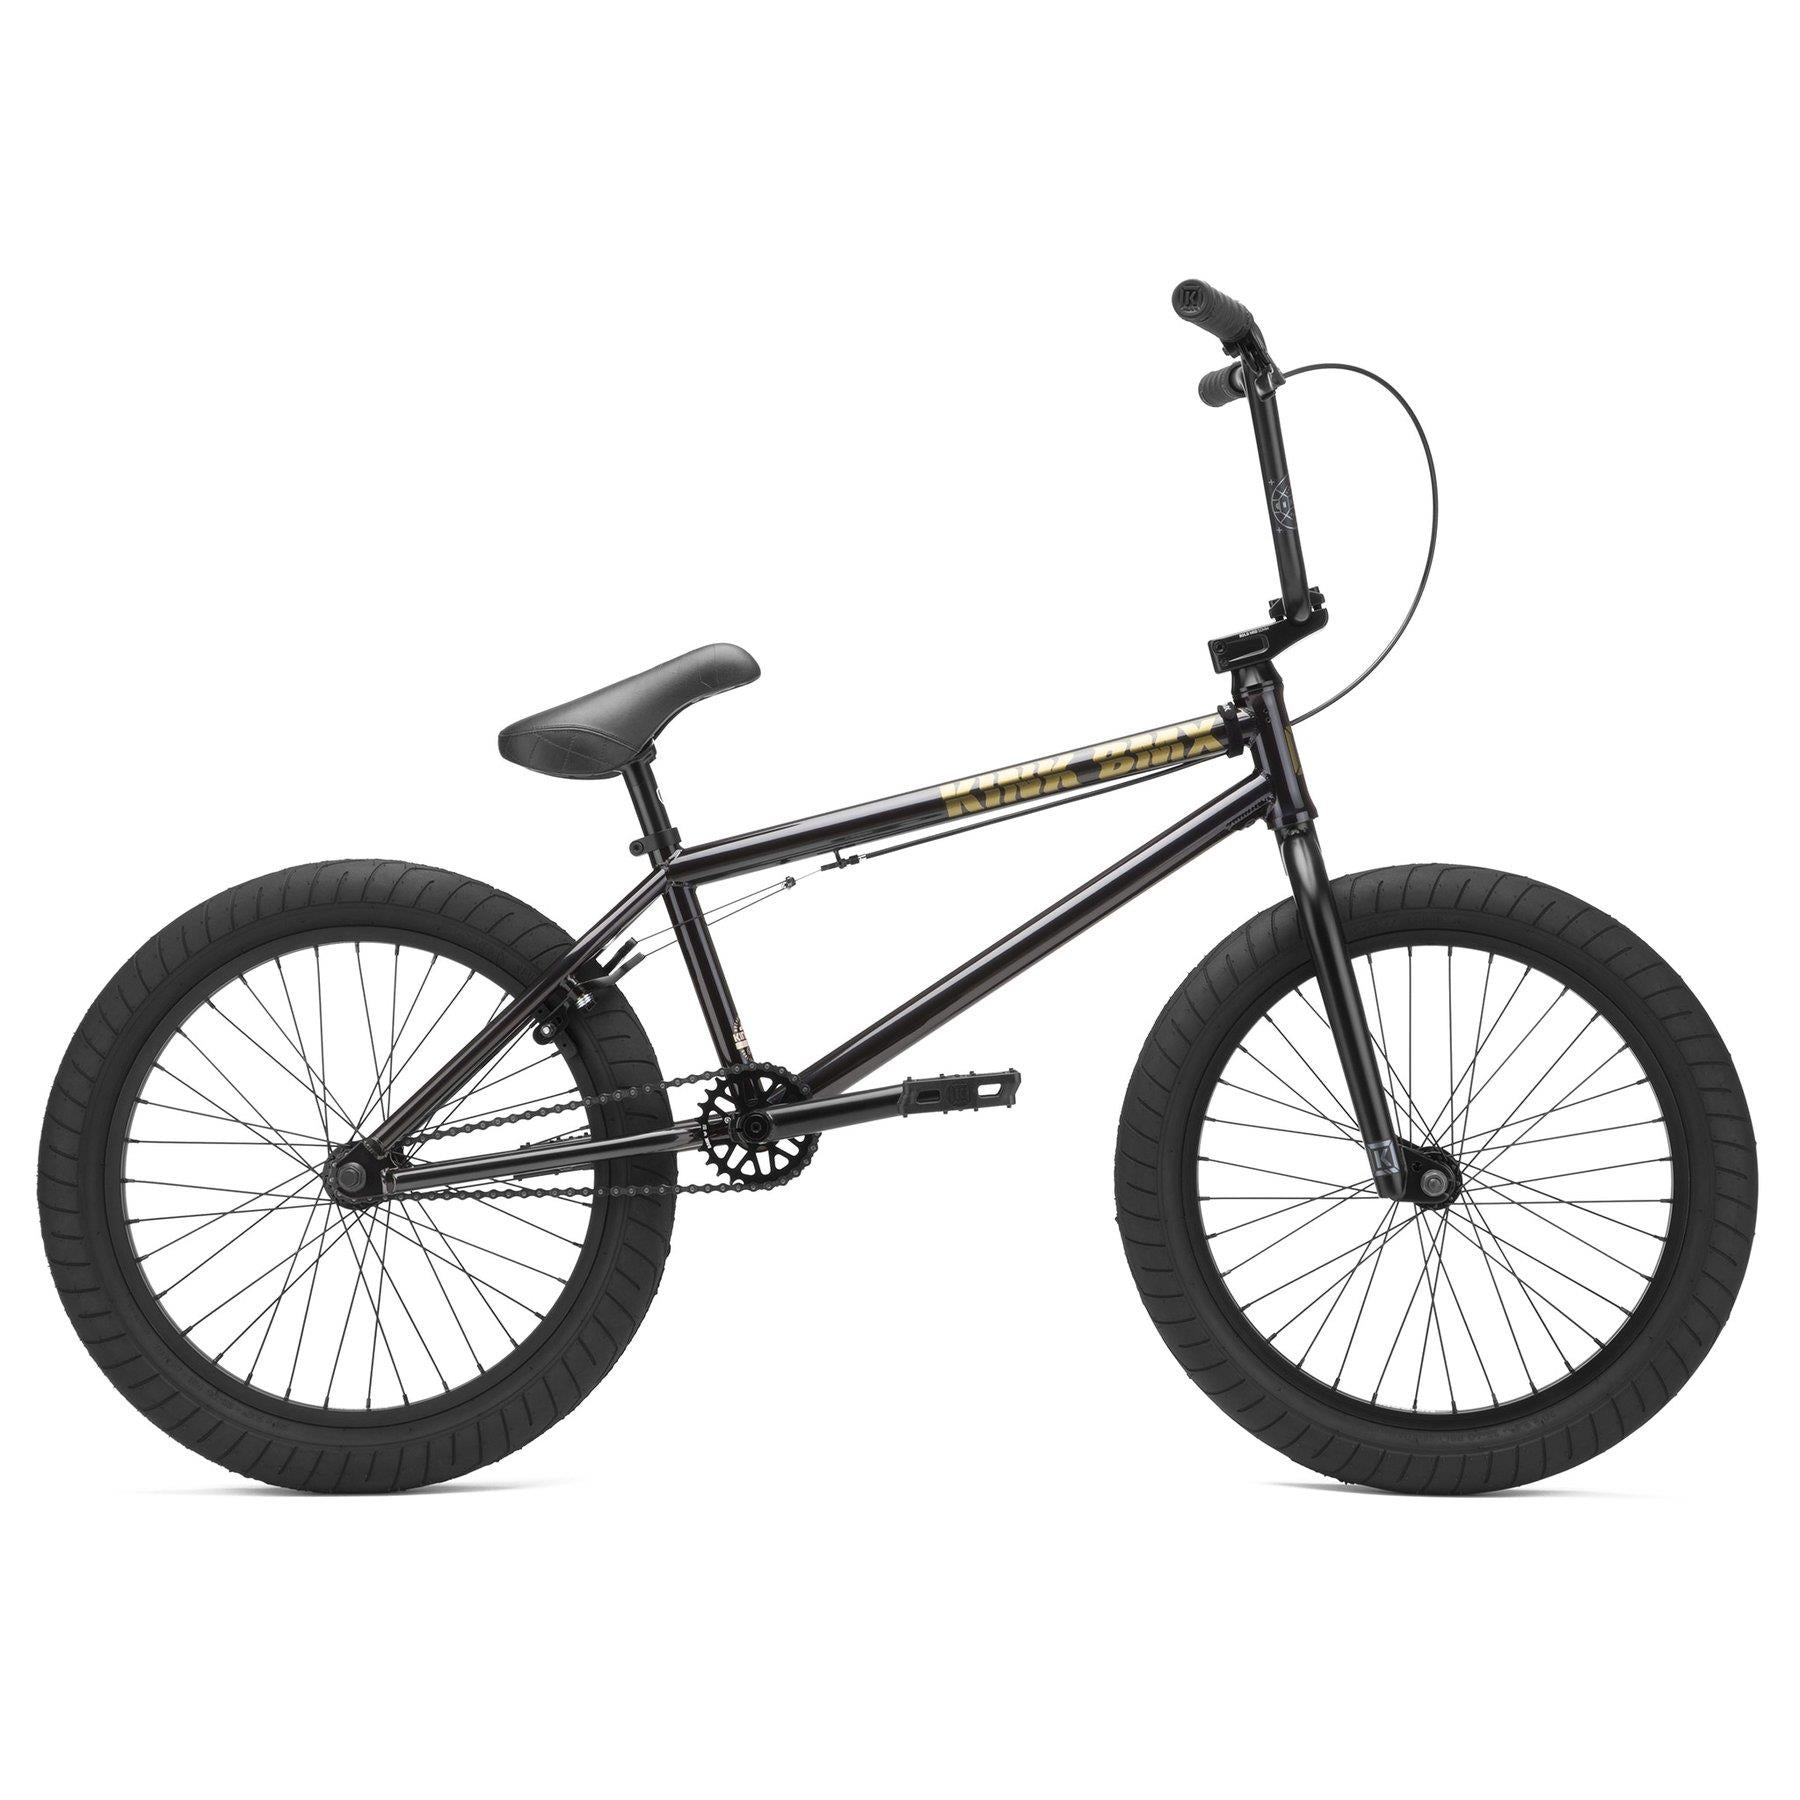 Kink Gap BMX Bike 2021